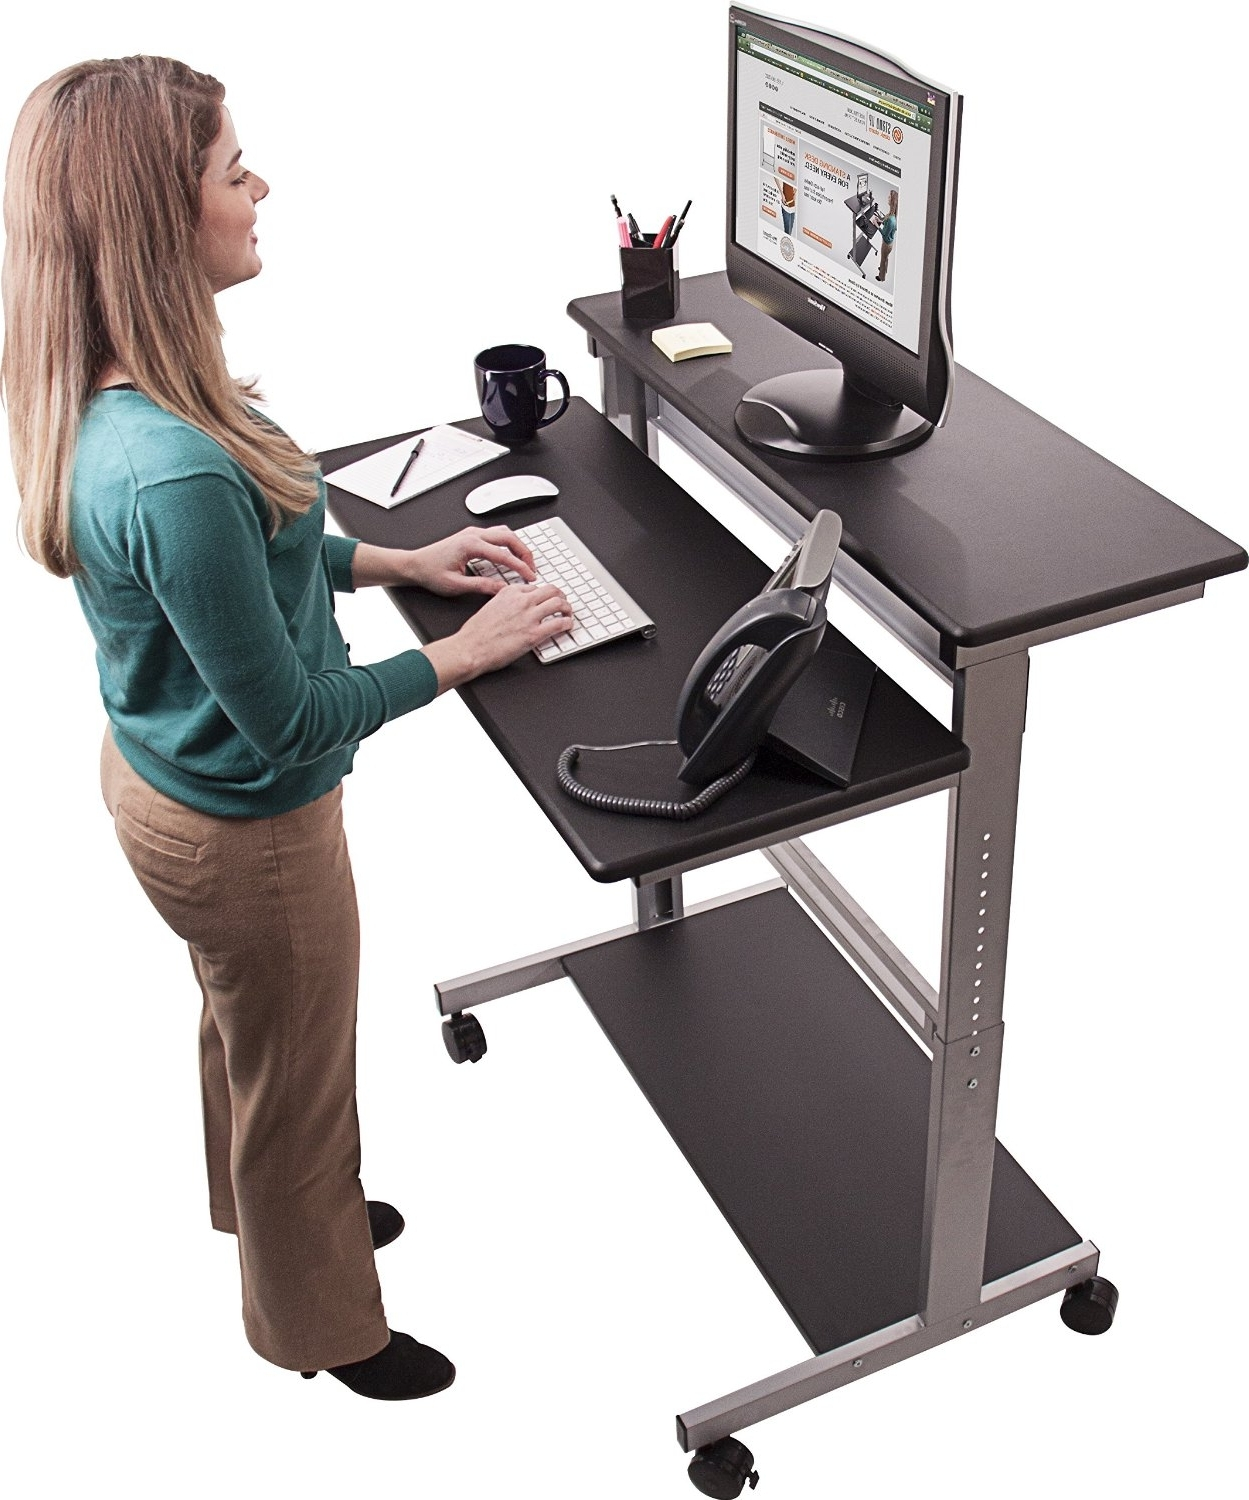 "Amazon: 40"" Black Shelves Mobile Ergonomic Stand Up Desk Intended For Well Known Amazon Computer Desks (View 9 of 20)"